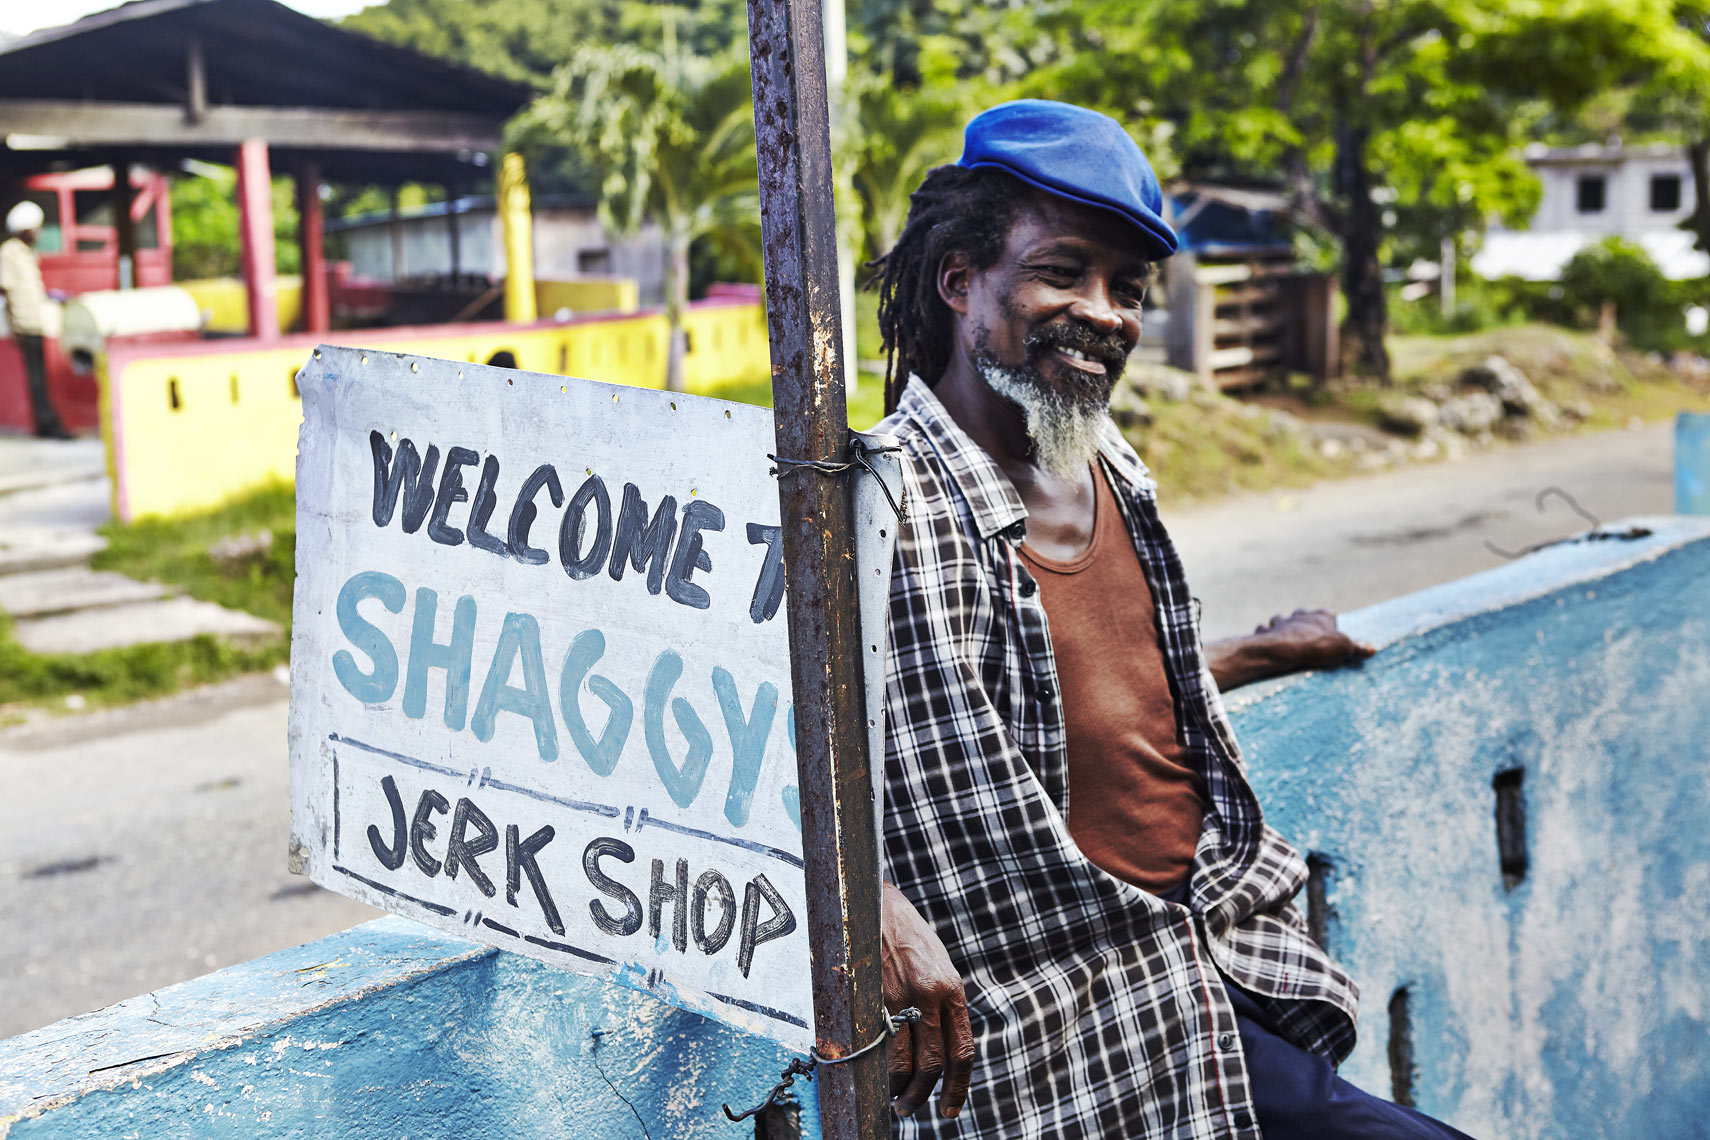 Shaggys-Jerk-Shop-Boston